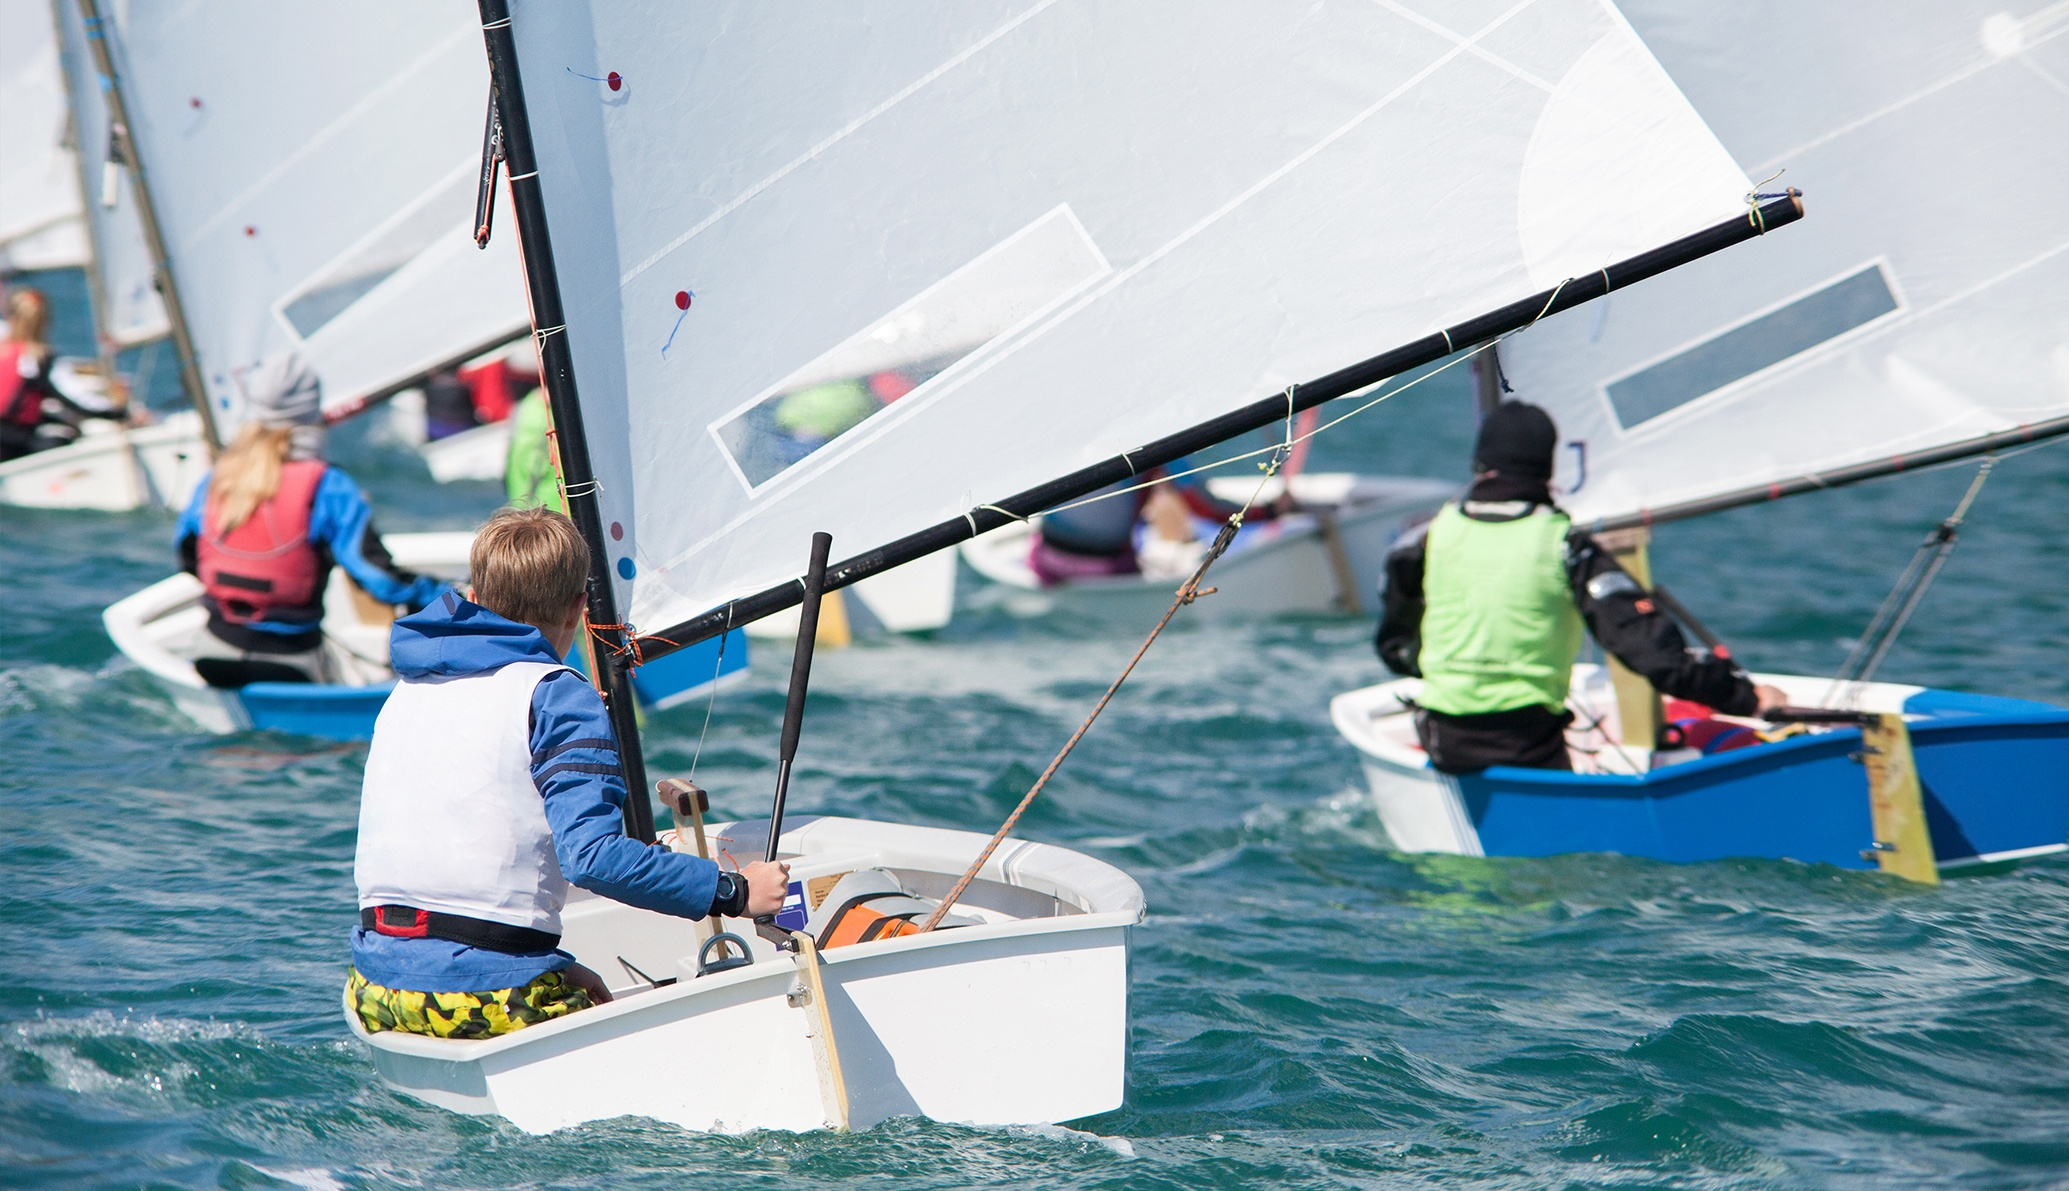 Sailing schools at Costa del Sol